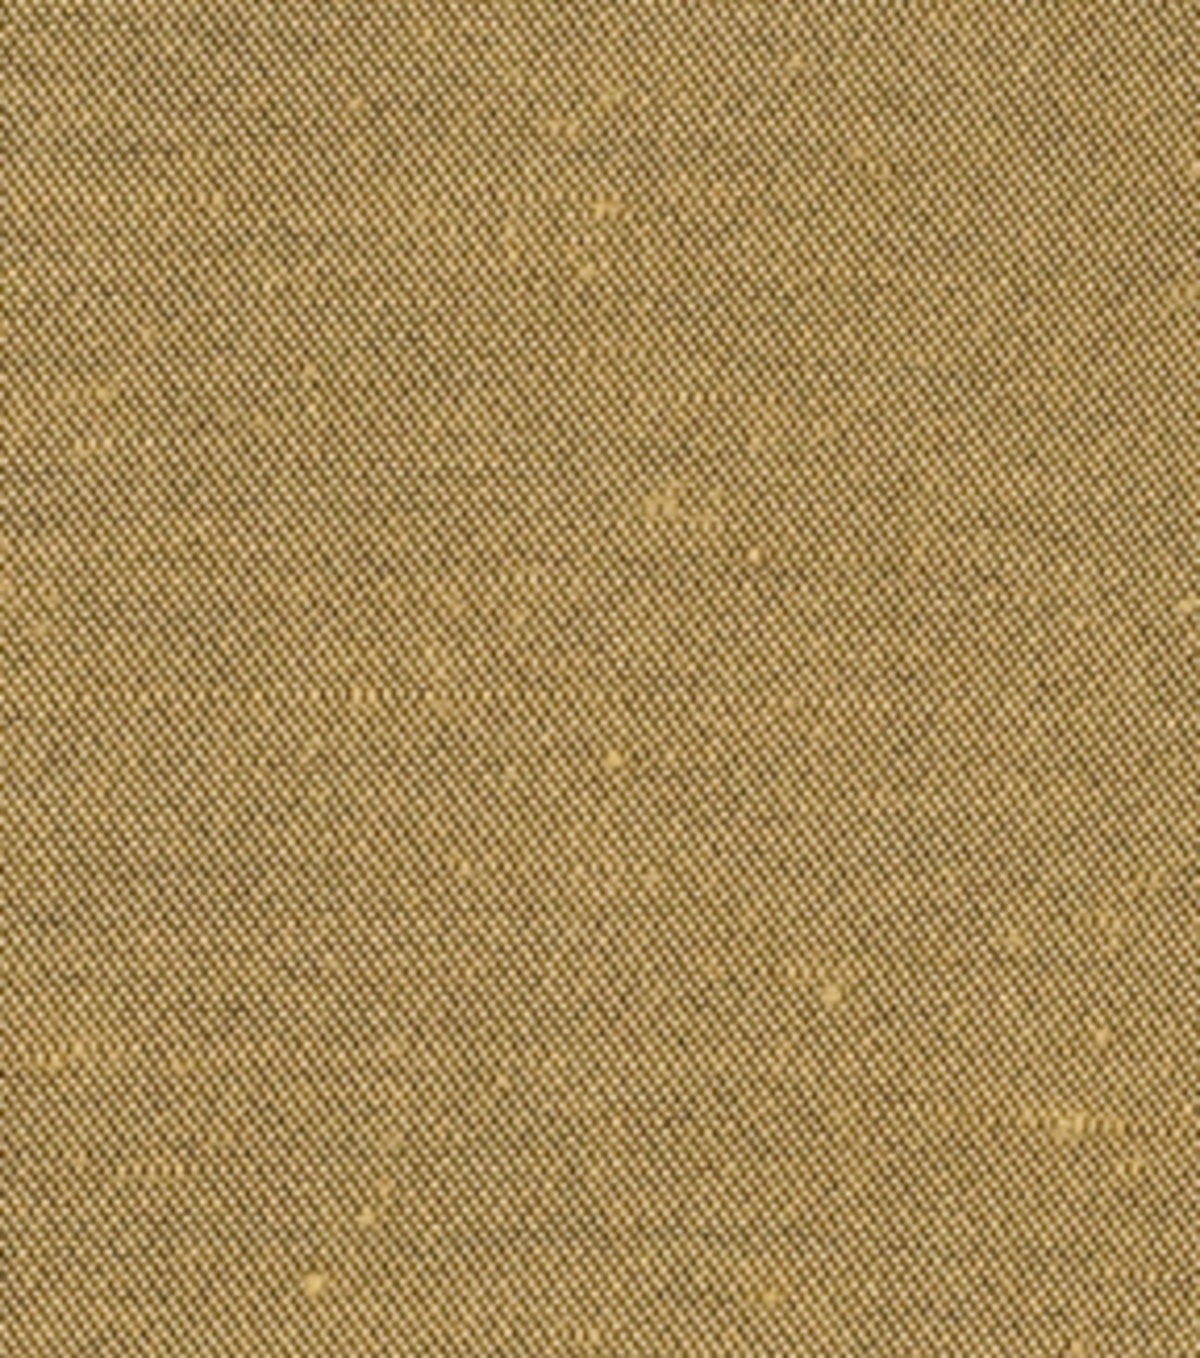 Home Decor 8\u0022x8\u0022 Fabric Swatch-Signature Series Antique Satin Coin